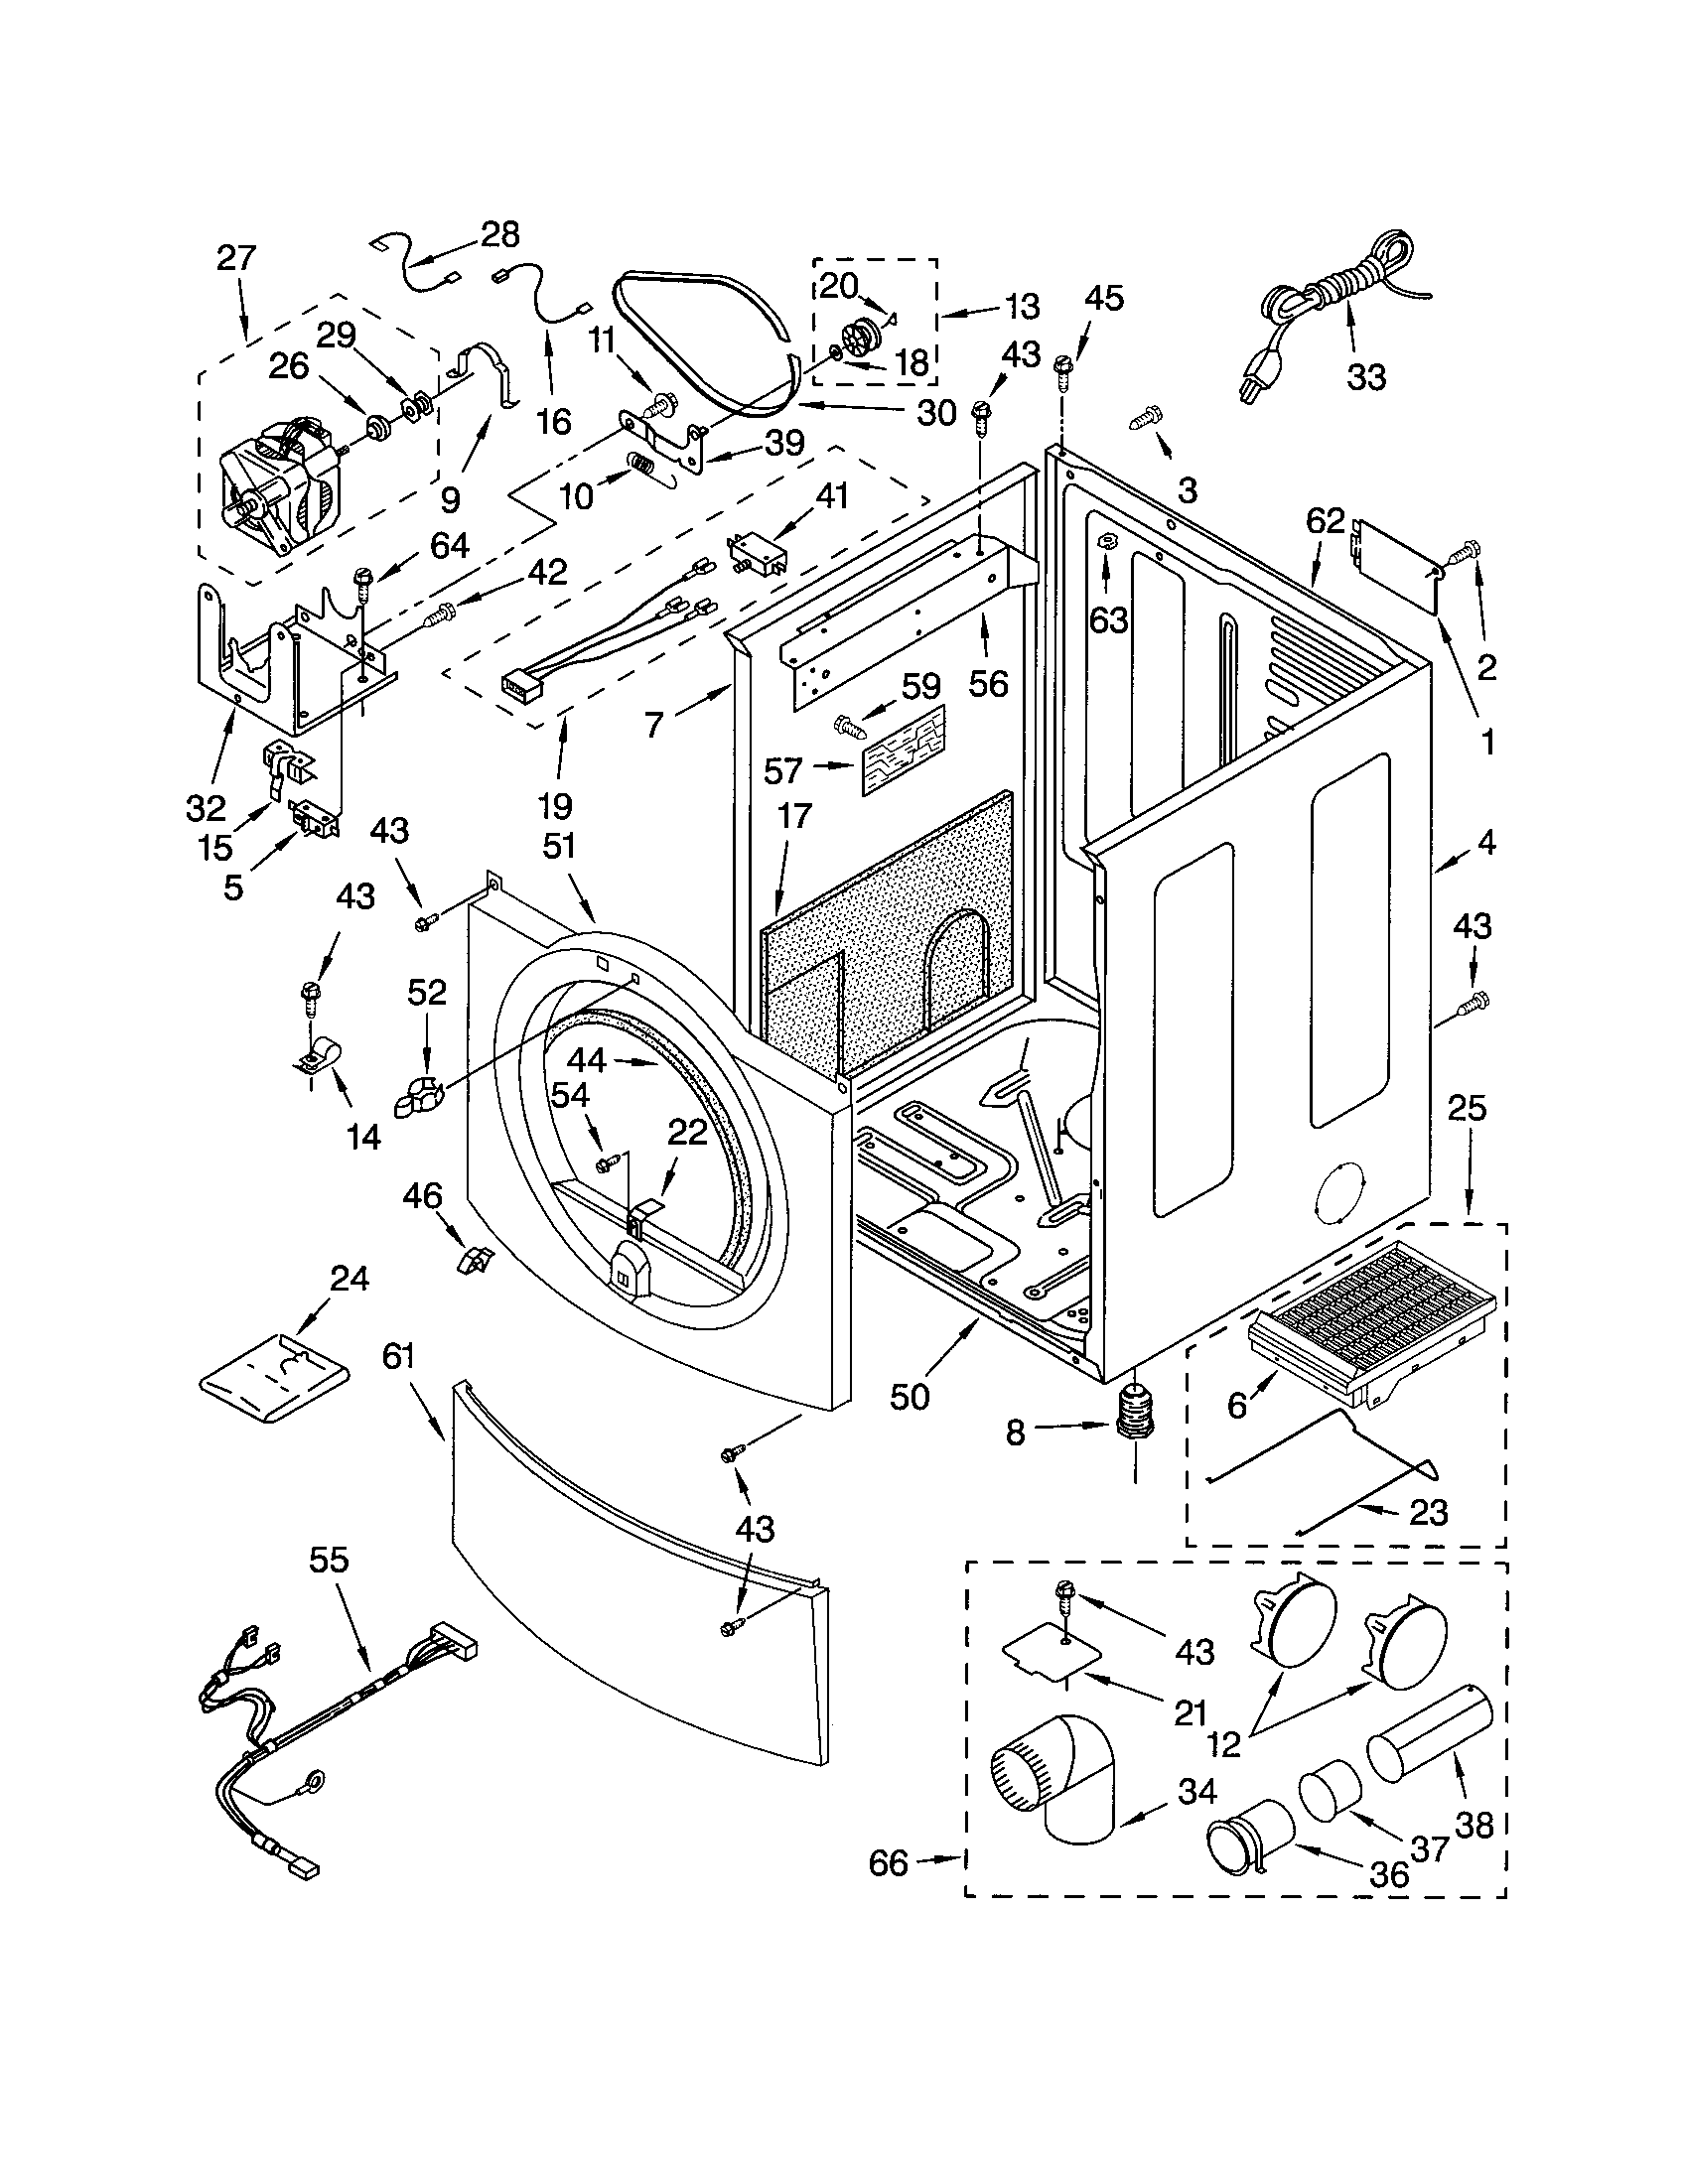 kenmore gas dryer parts diagram cat6 wall plate wiring model 11092822101 residential genuine